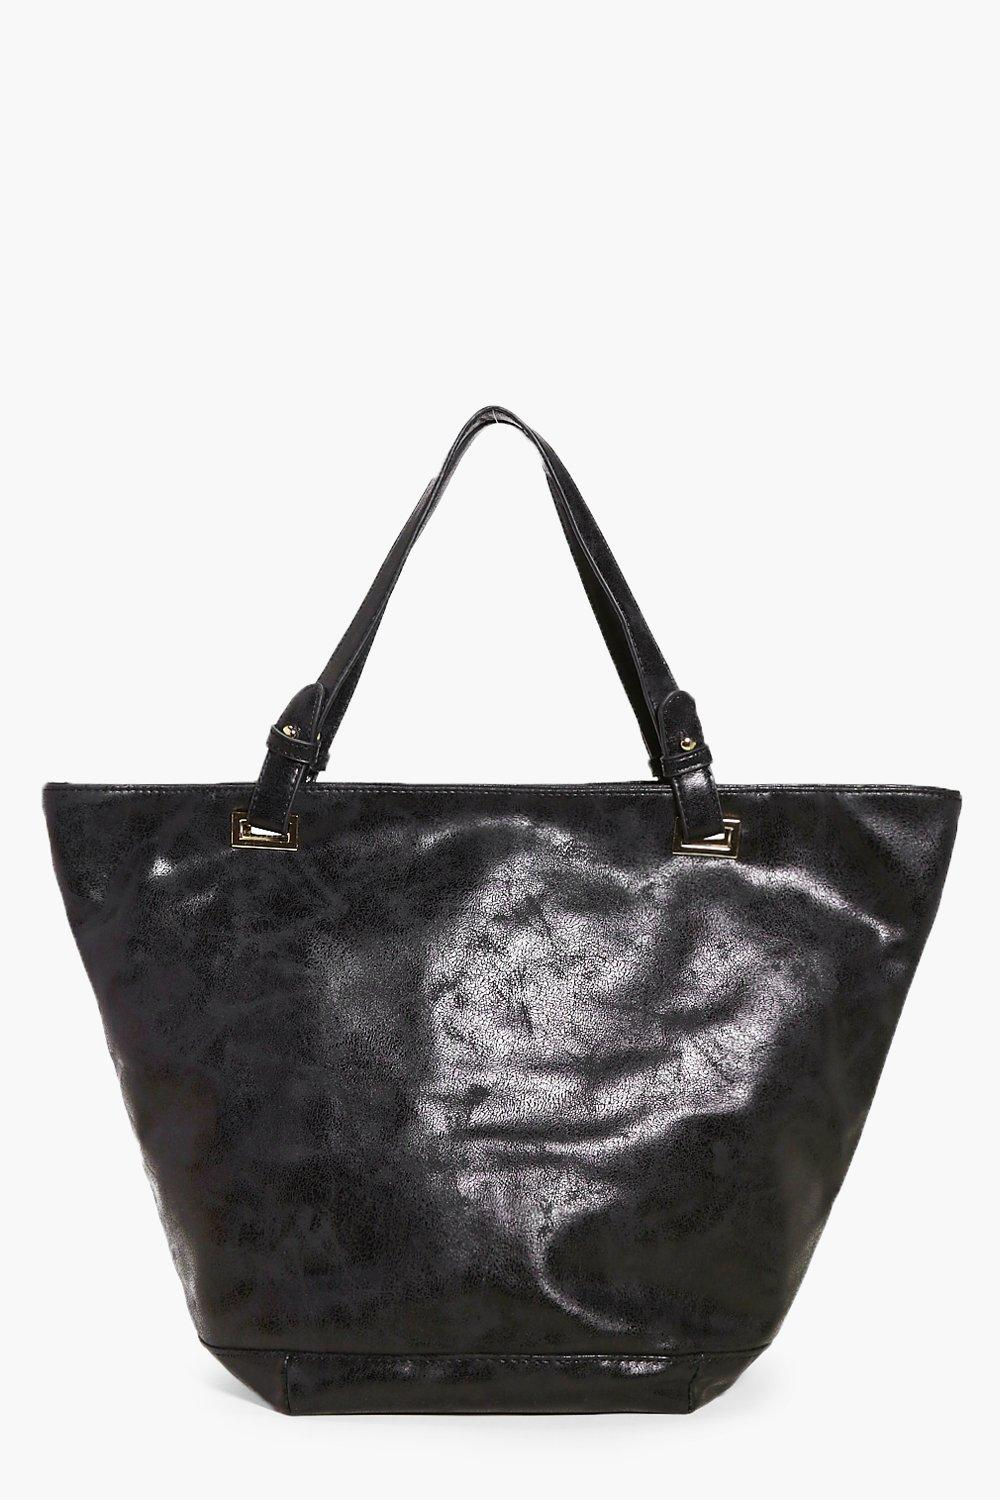 Metallic Distressed Shopper Bag - black - Eloise M